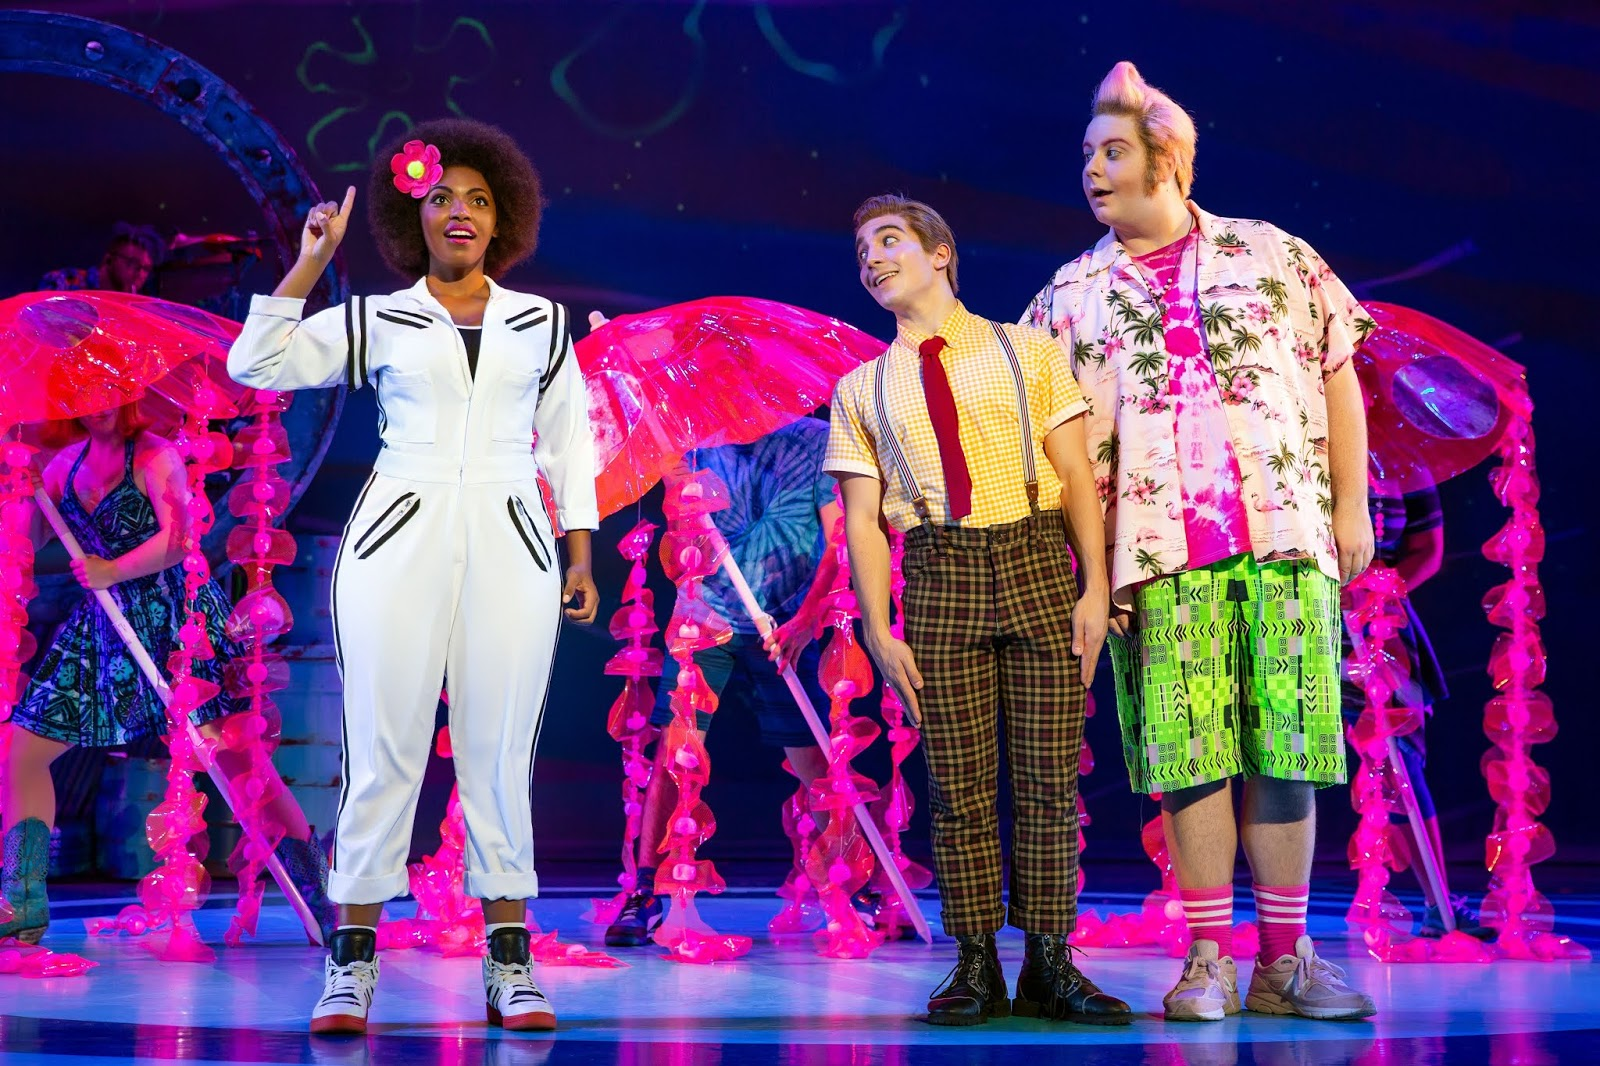 'The SpongeBob Musical' perfectly melds the first with music